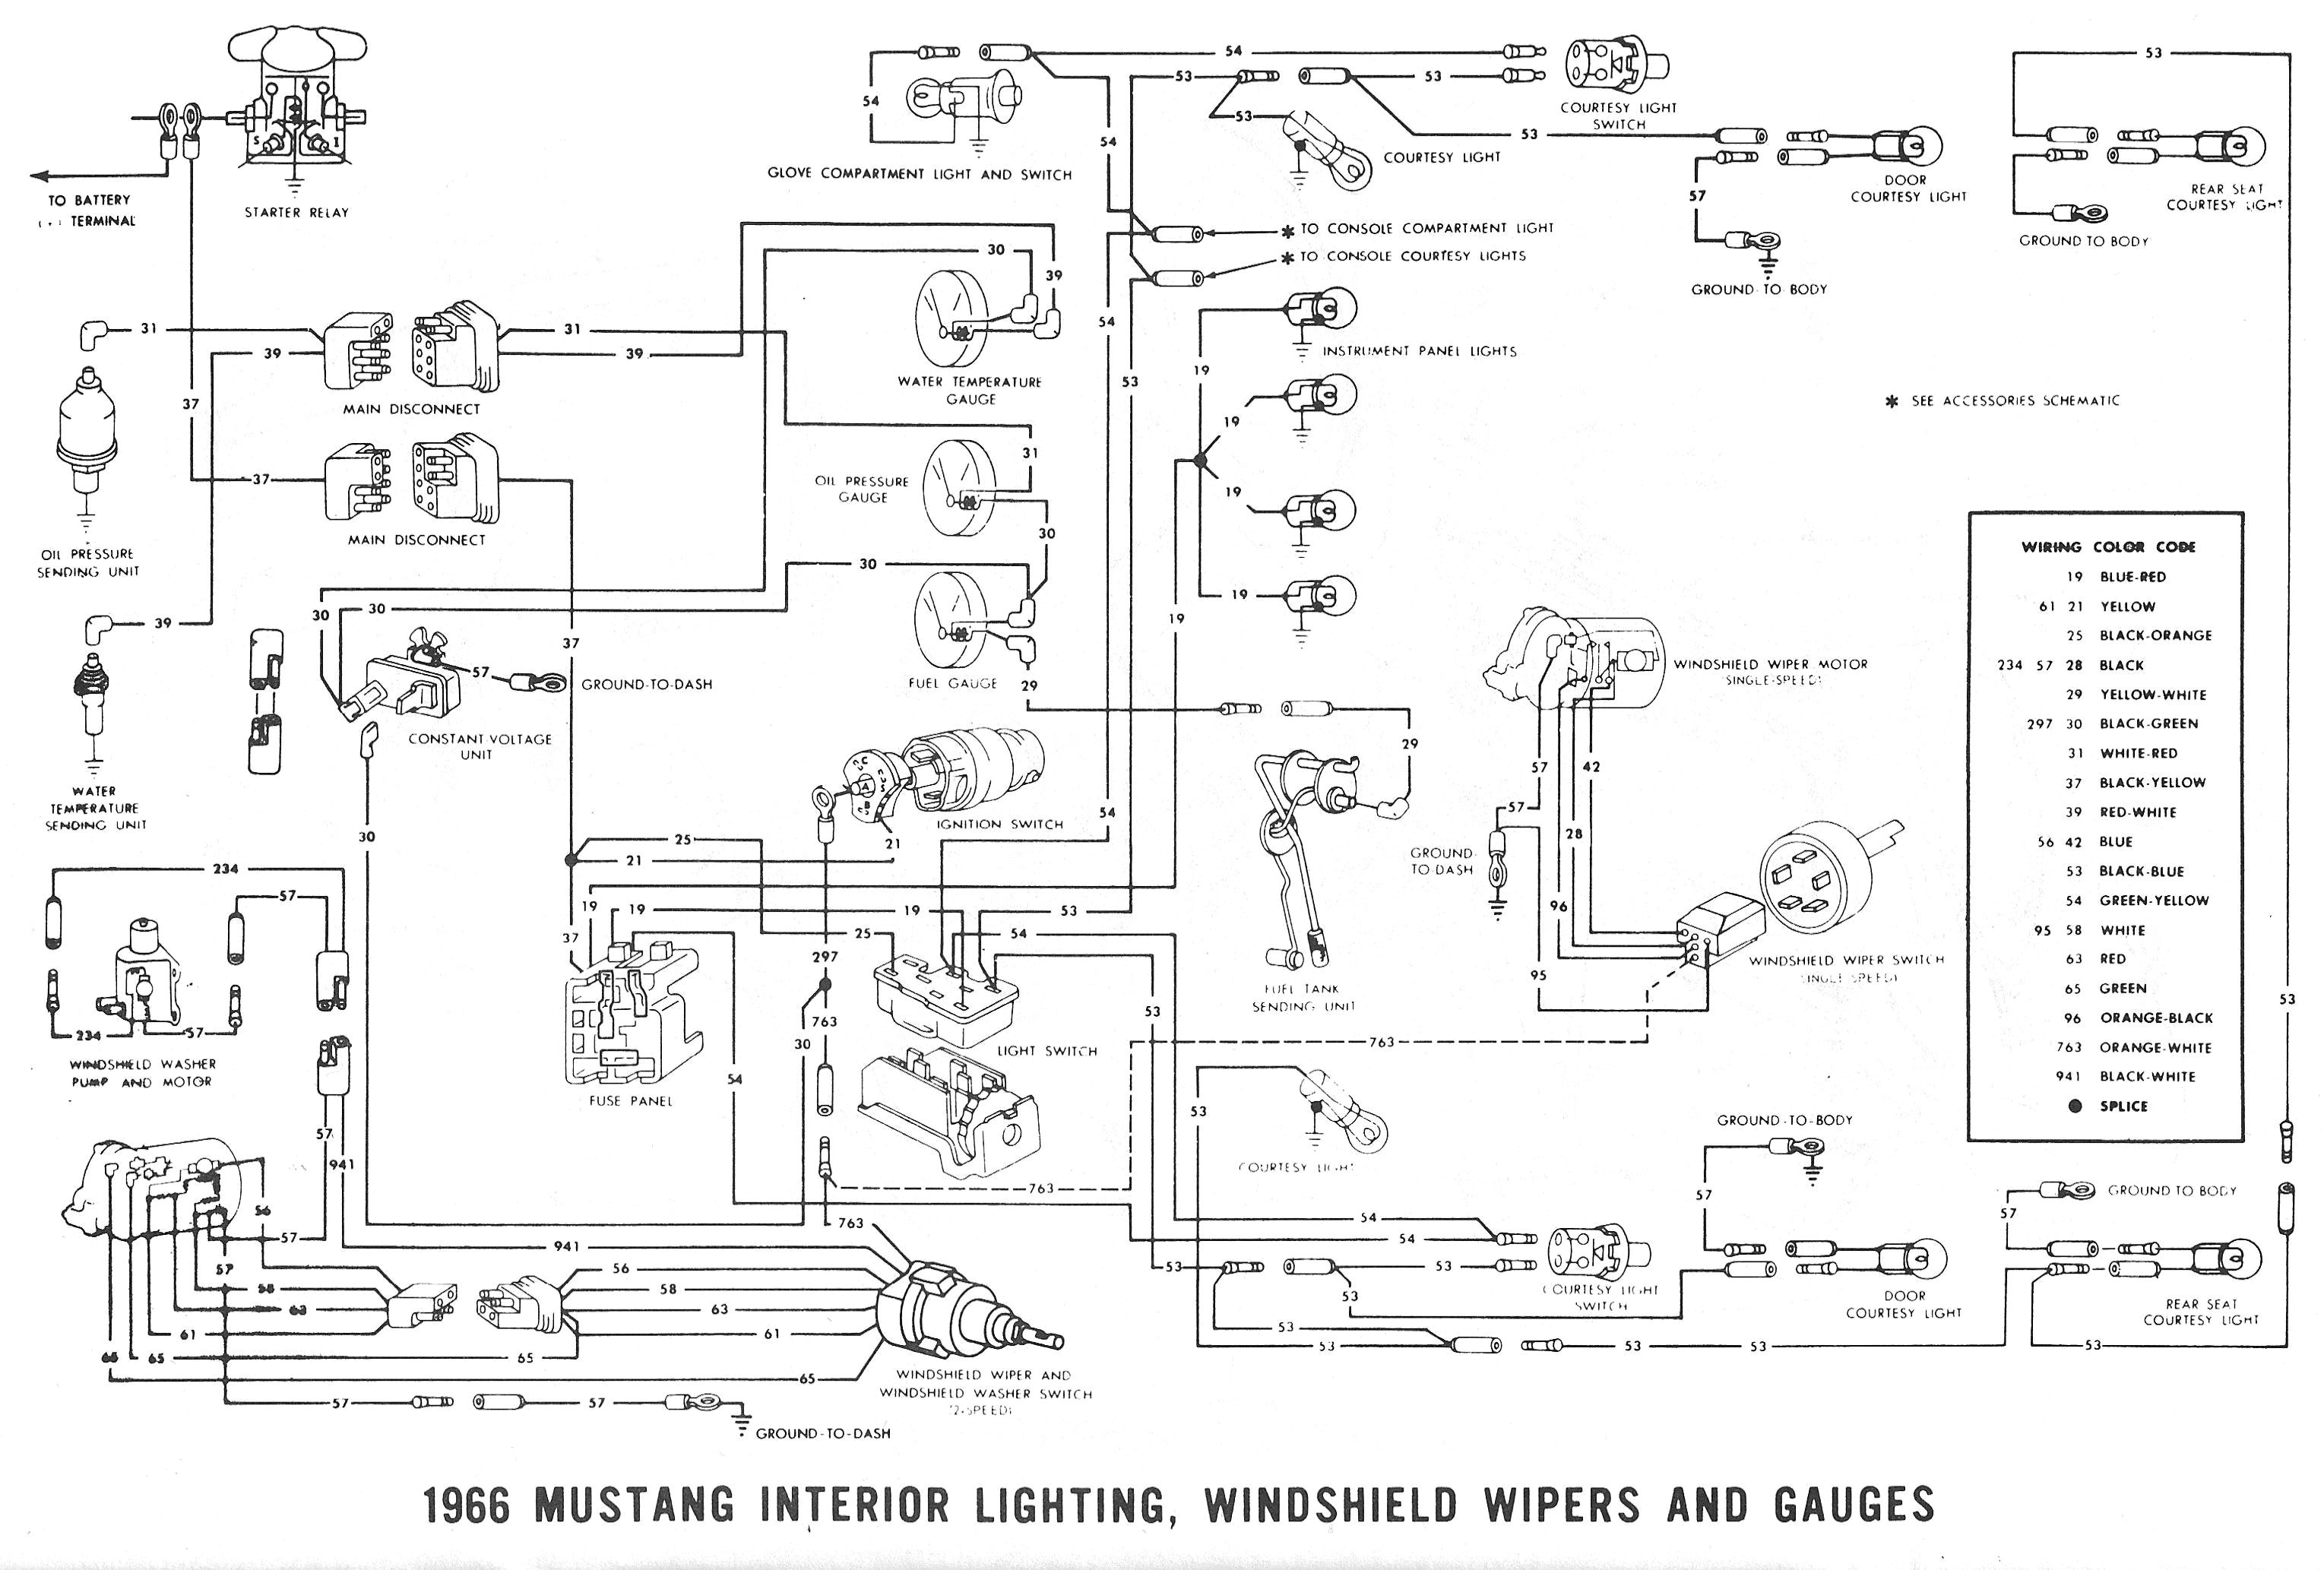 2015 Mustang Wiring Schematic Complete Wiring Diagrams \u2022 1965 Mustang  Alternator Wiring Diagram 67 Mustang Ignition Wiring Diagram